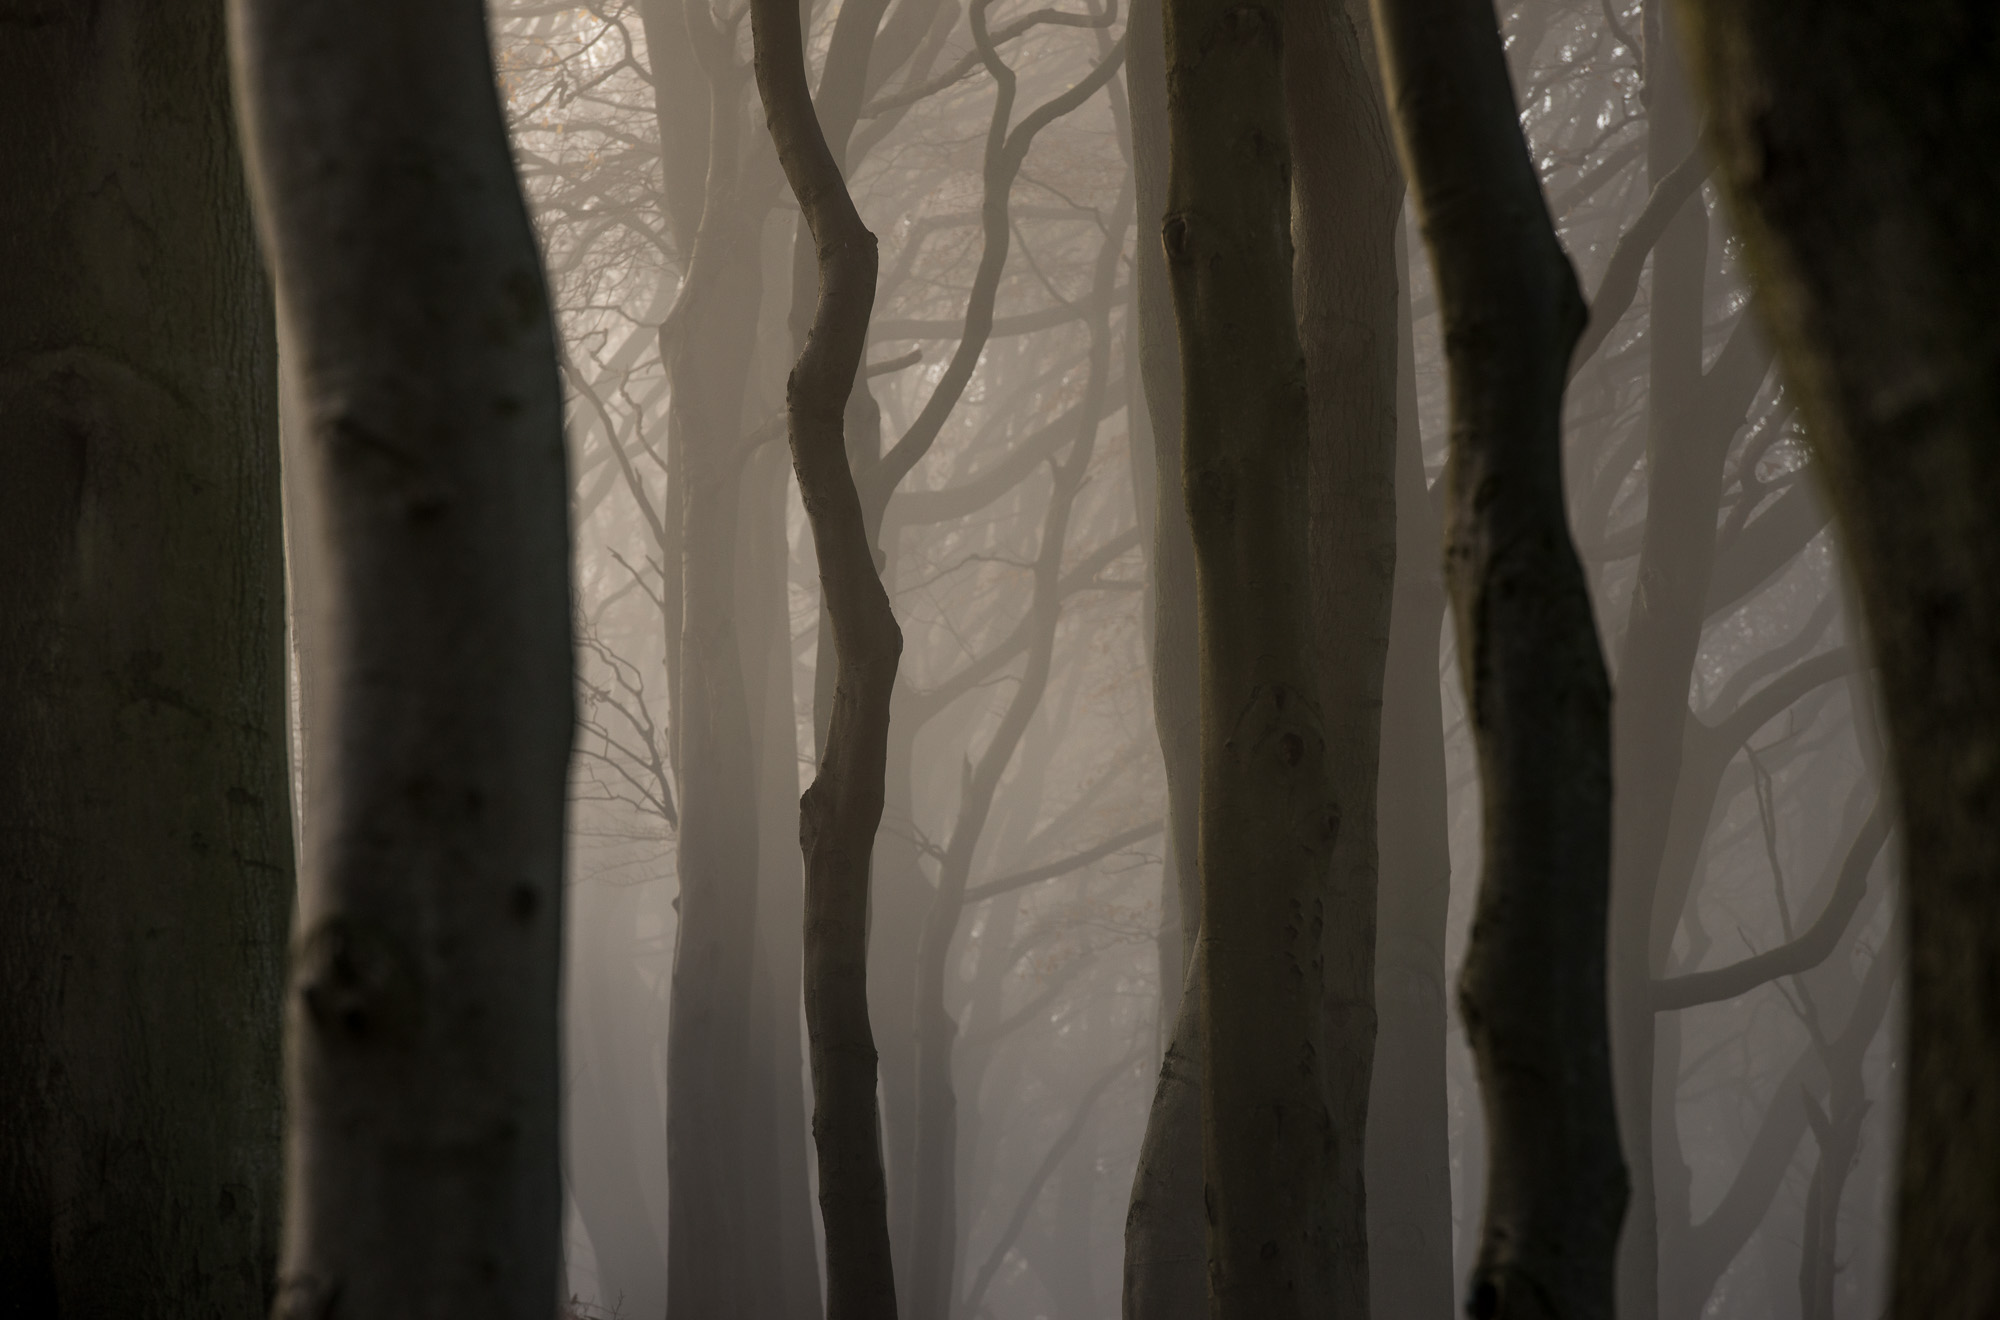 Beech trees together with mist